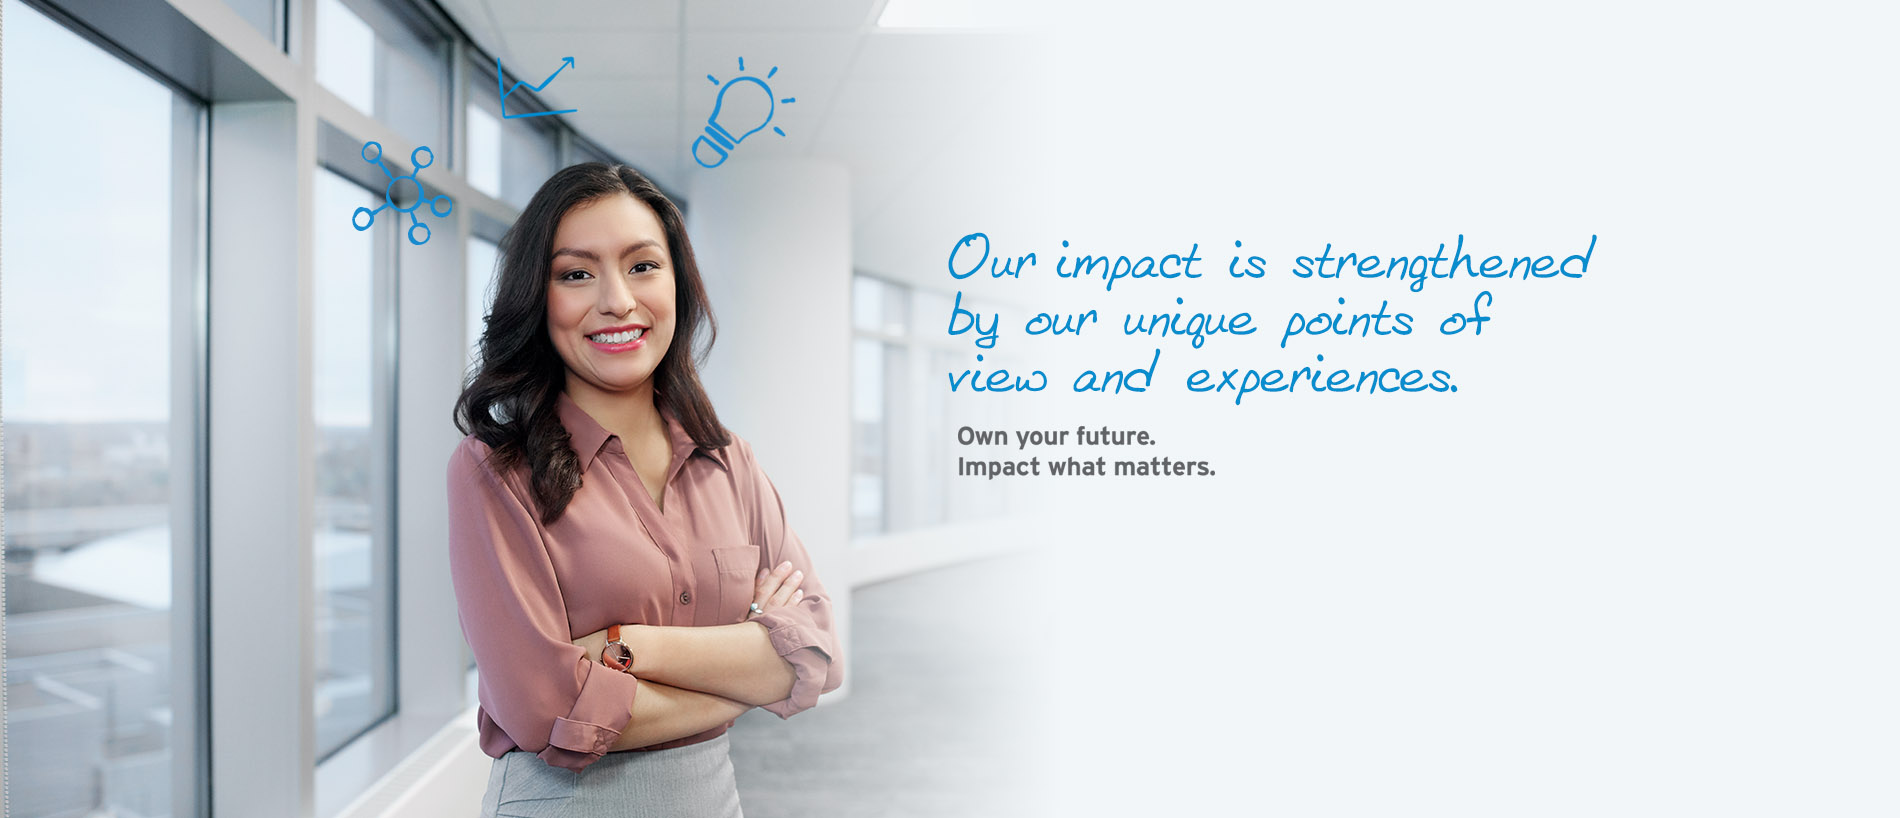 Our impact is strengthened by our unique points of view and experiences. Own your future. Impact what matters.